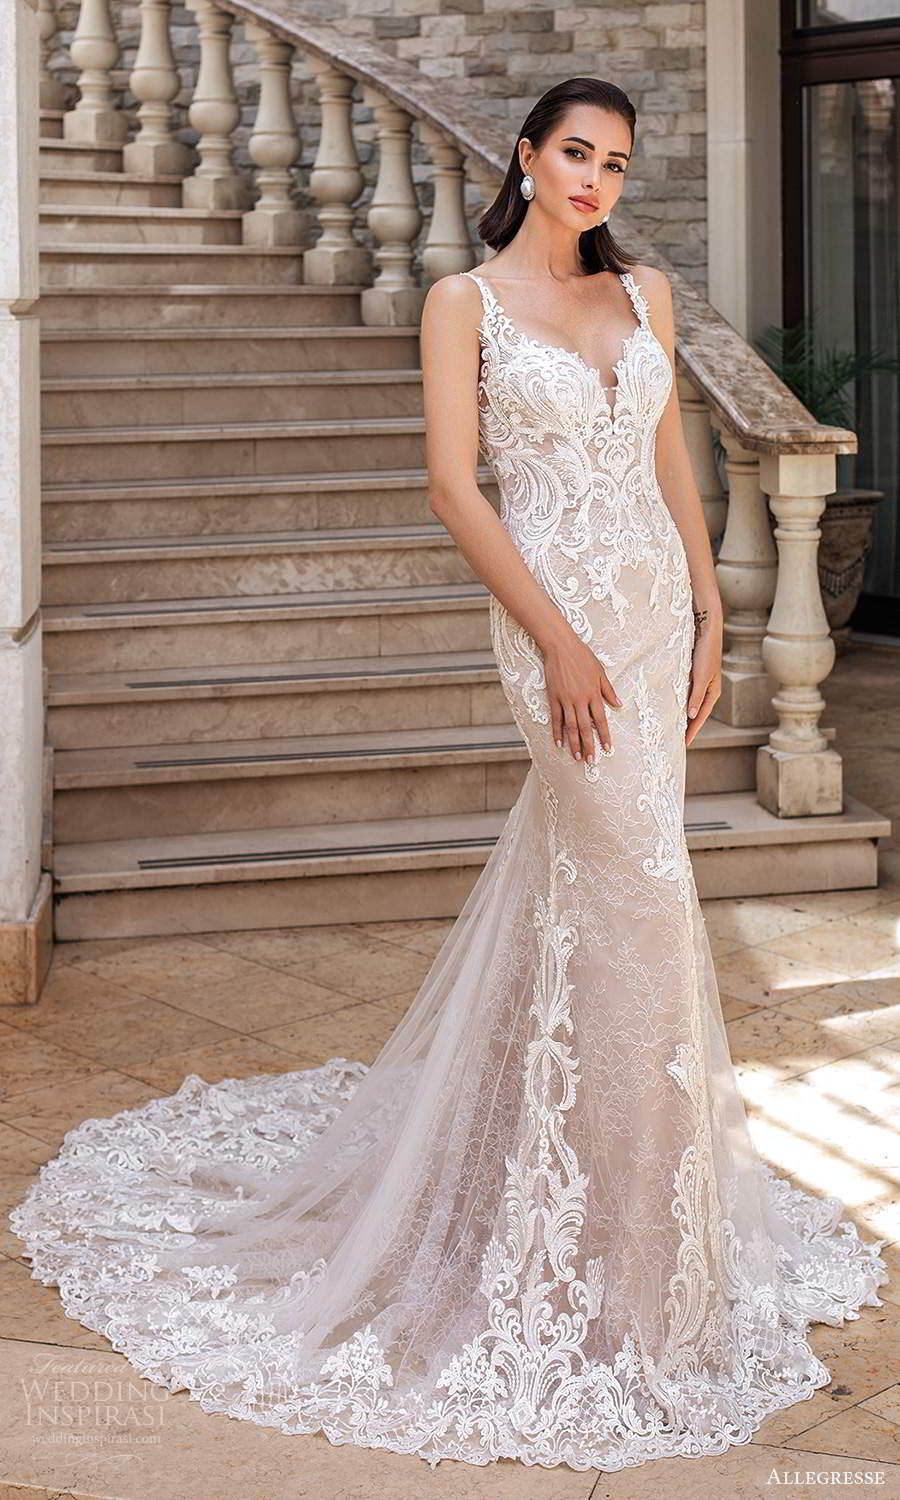 allegresse 2021 bridal sleeveless straps plunging sweetheart neckline fully embellished lace fit flare mermaid wedding dress chapel train blush (8) mv